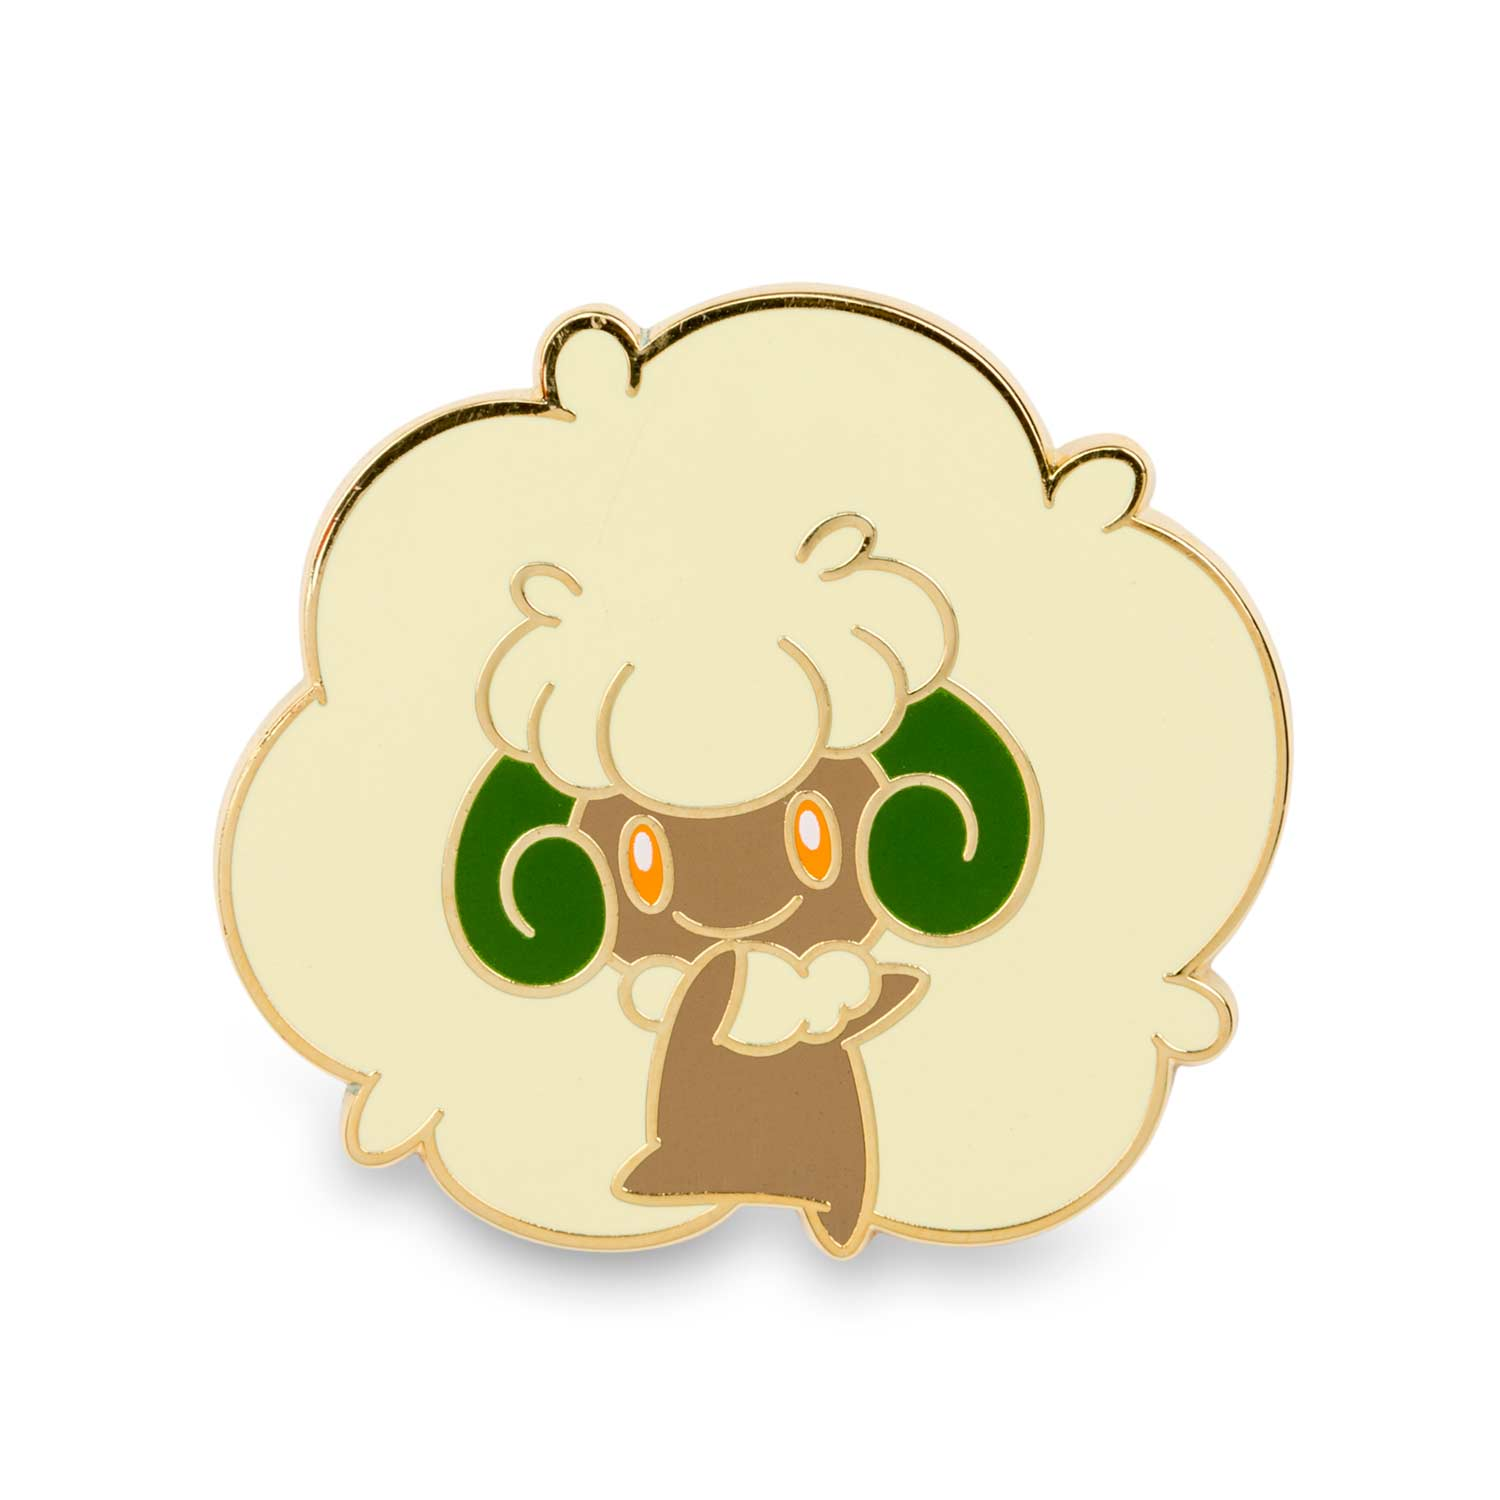 Whimsicott. Whimsicott Art, Sprites, & Wallpapers